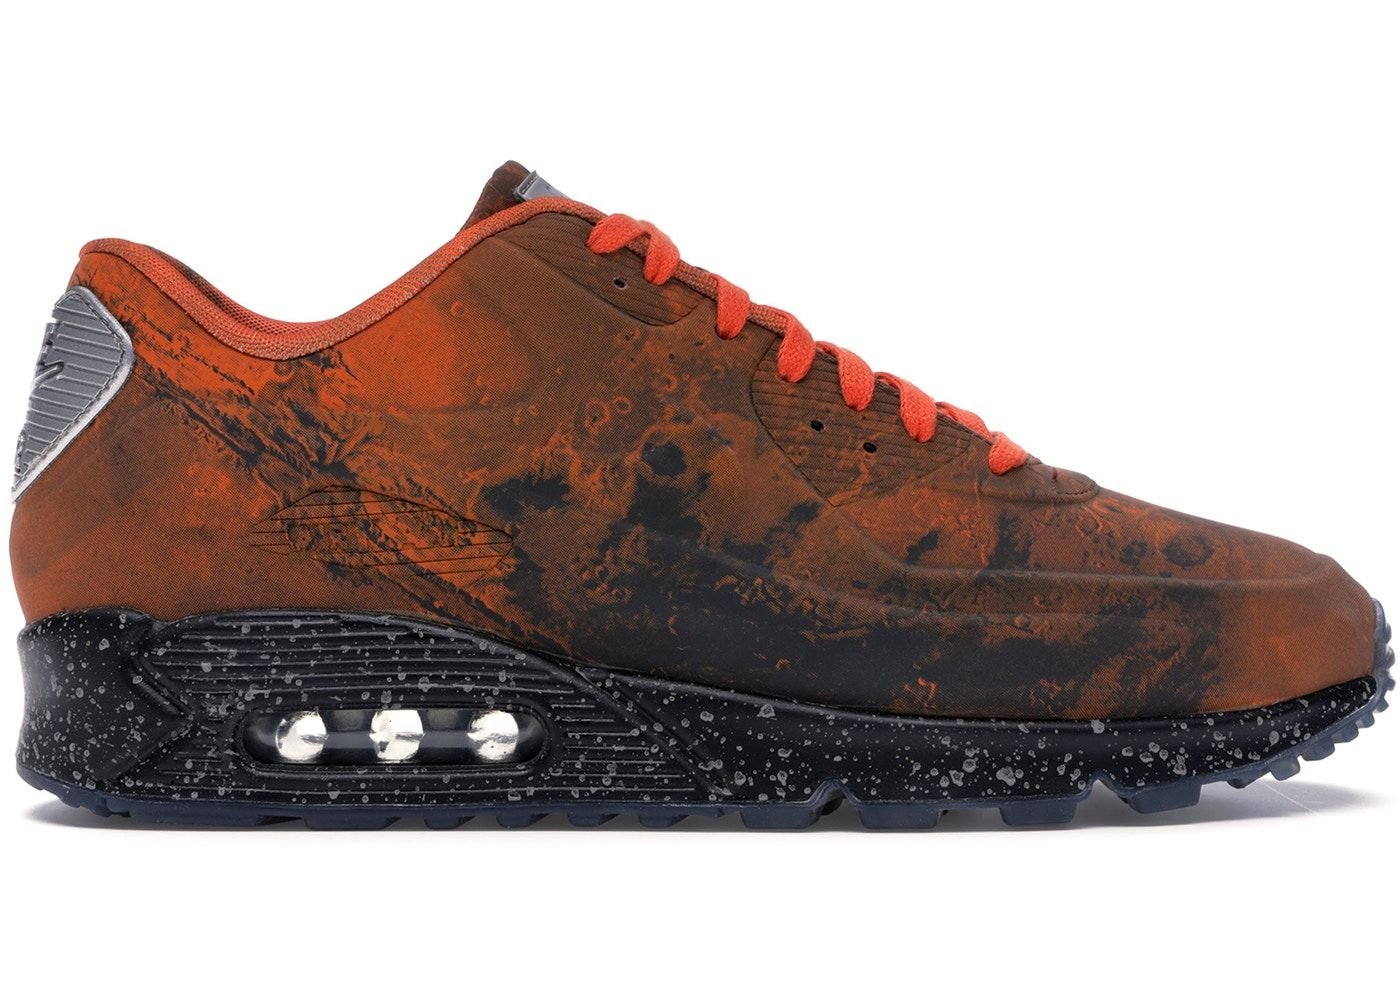 fc9ce63f453 Check out the Air Max 90 Mars Landing available on StockX